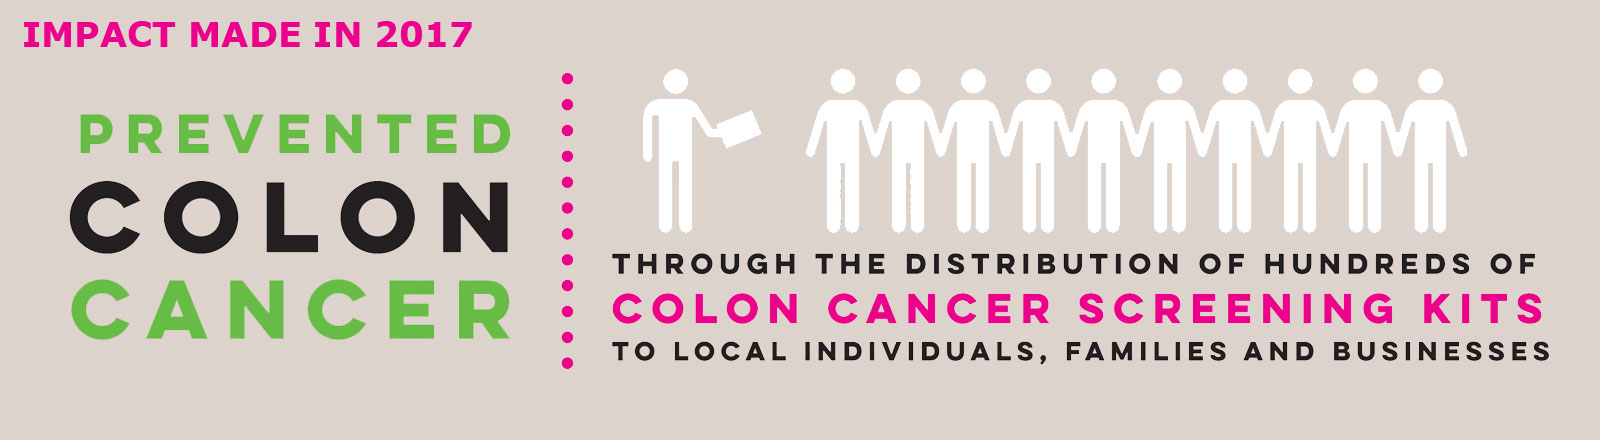 slide 2017 Impact colon cancer screenings